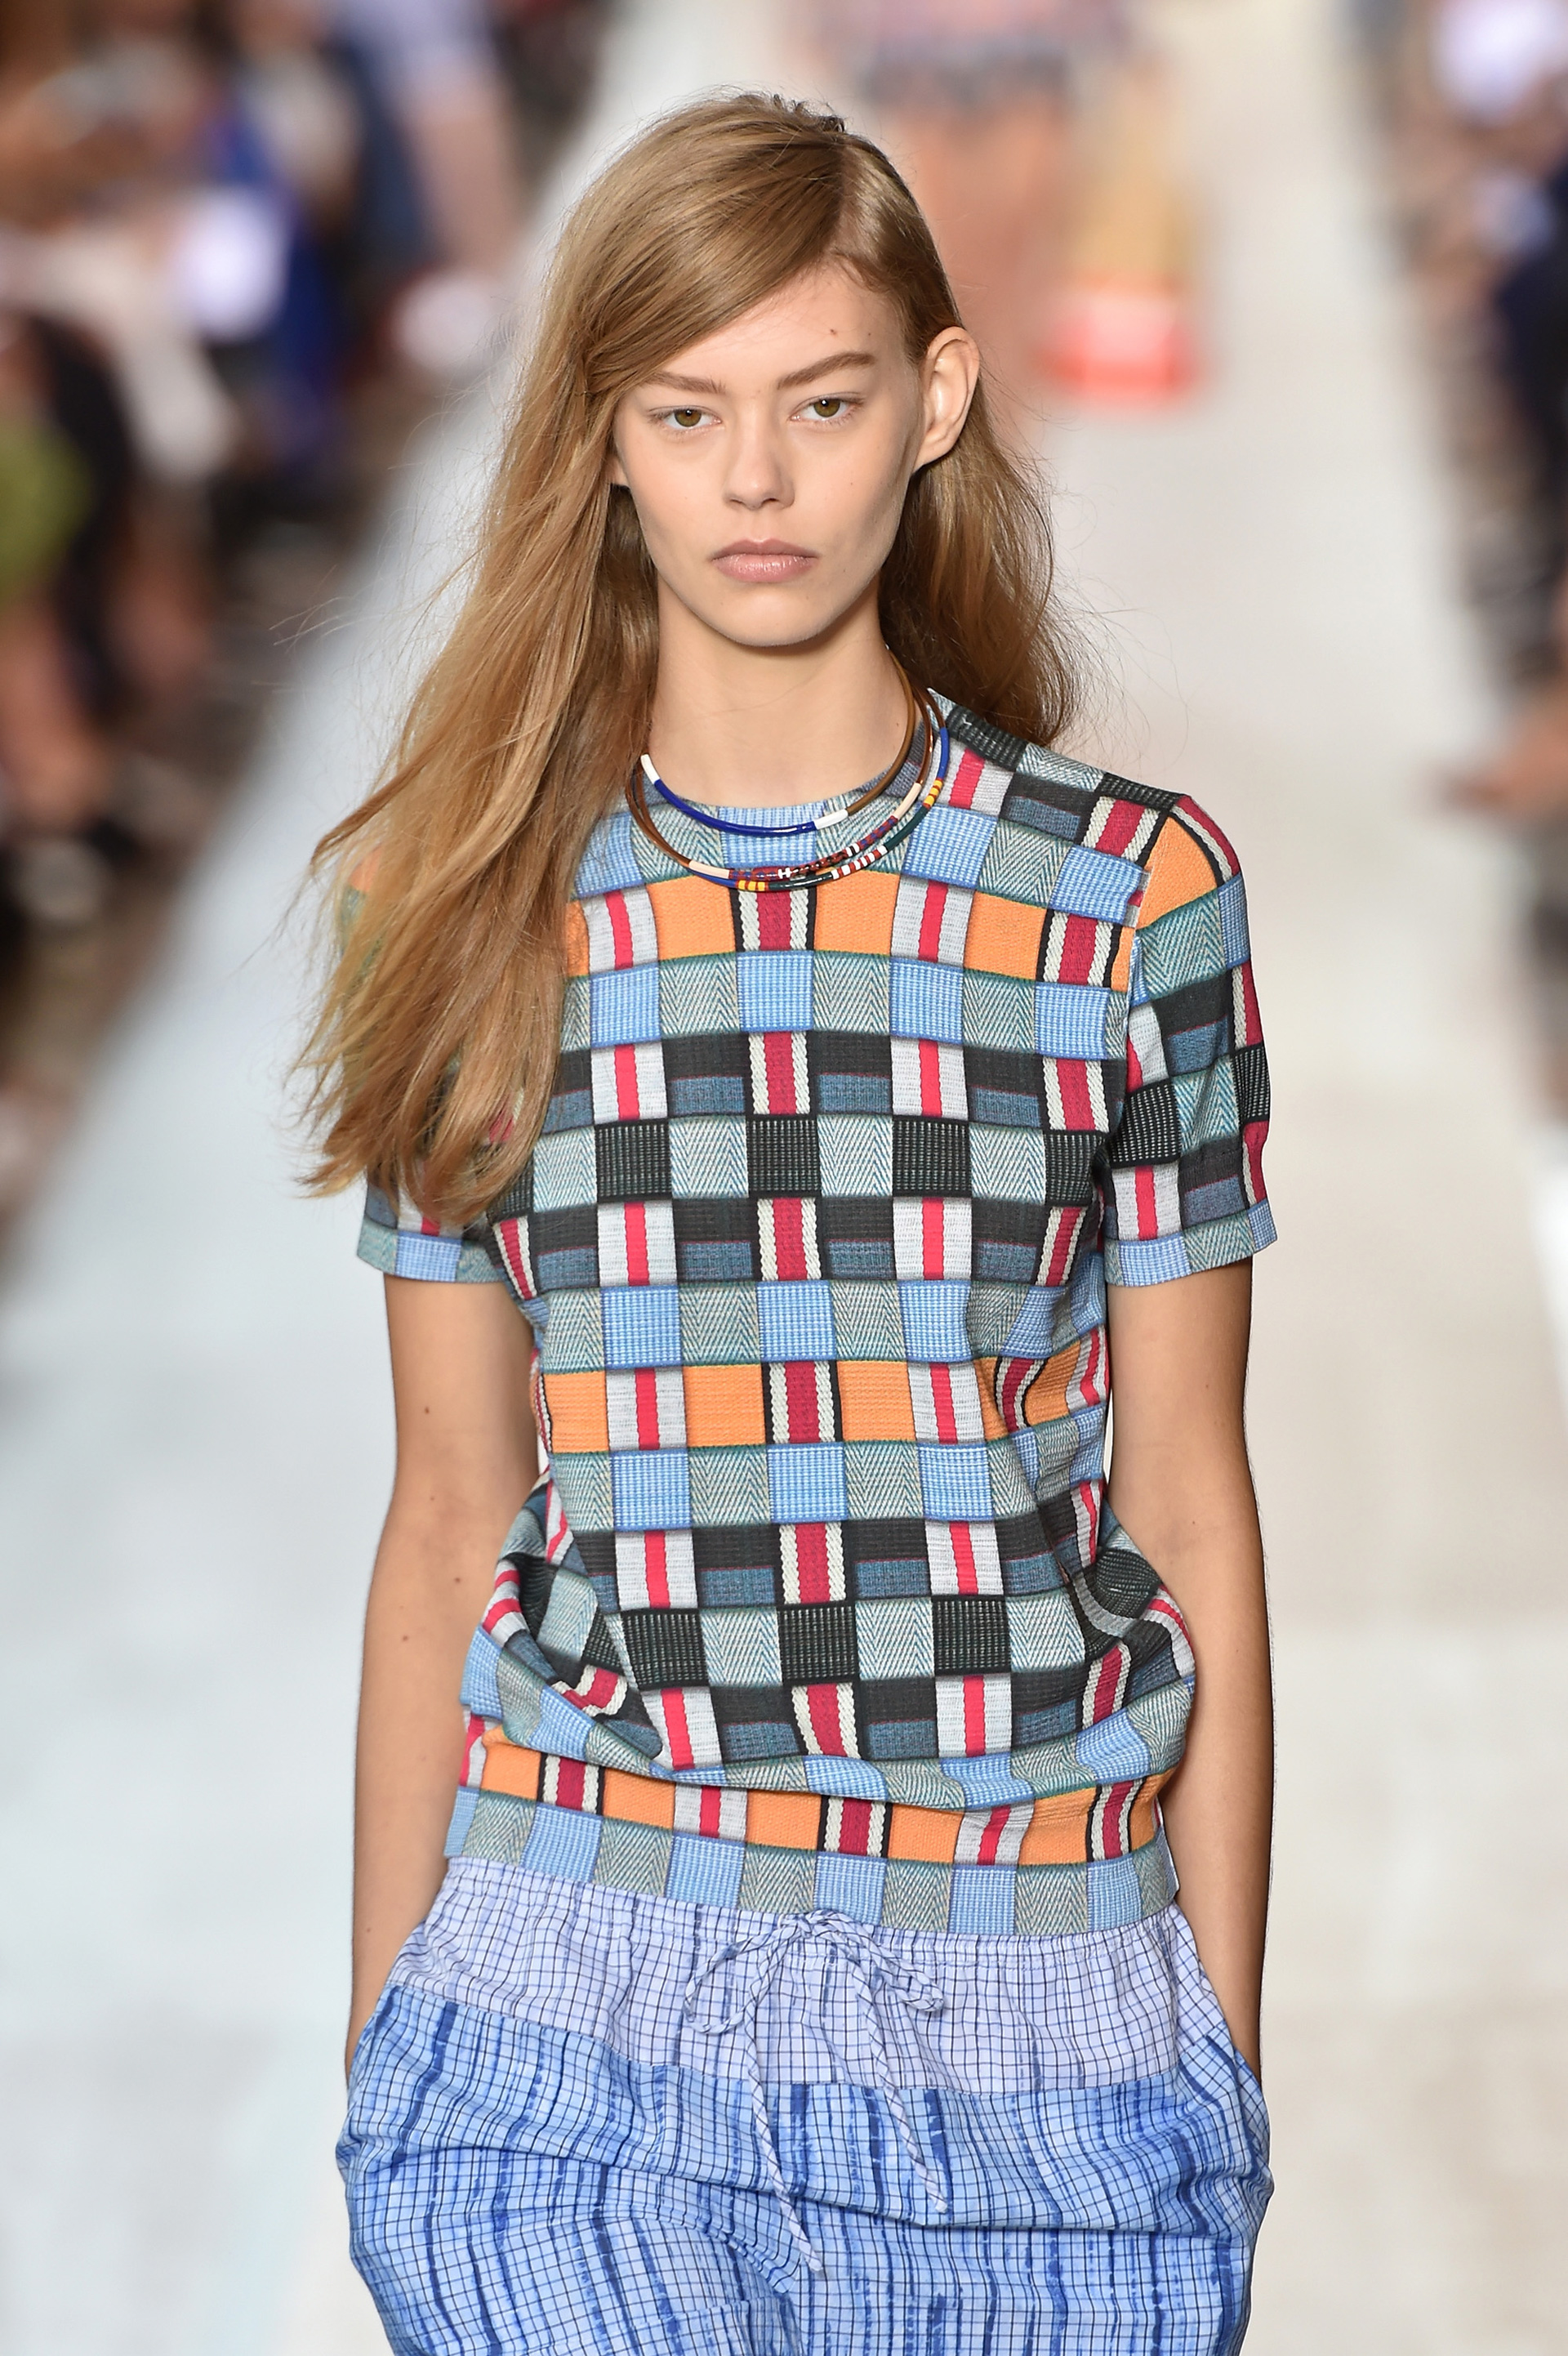 Tory Burch's spring 2015 collection 8